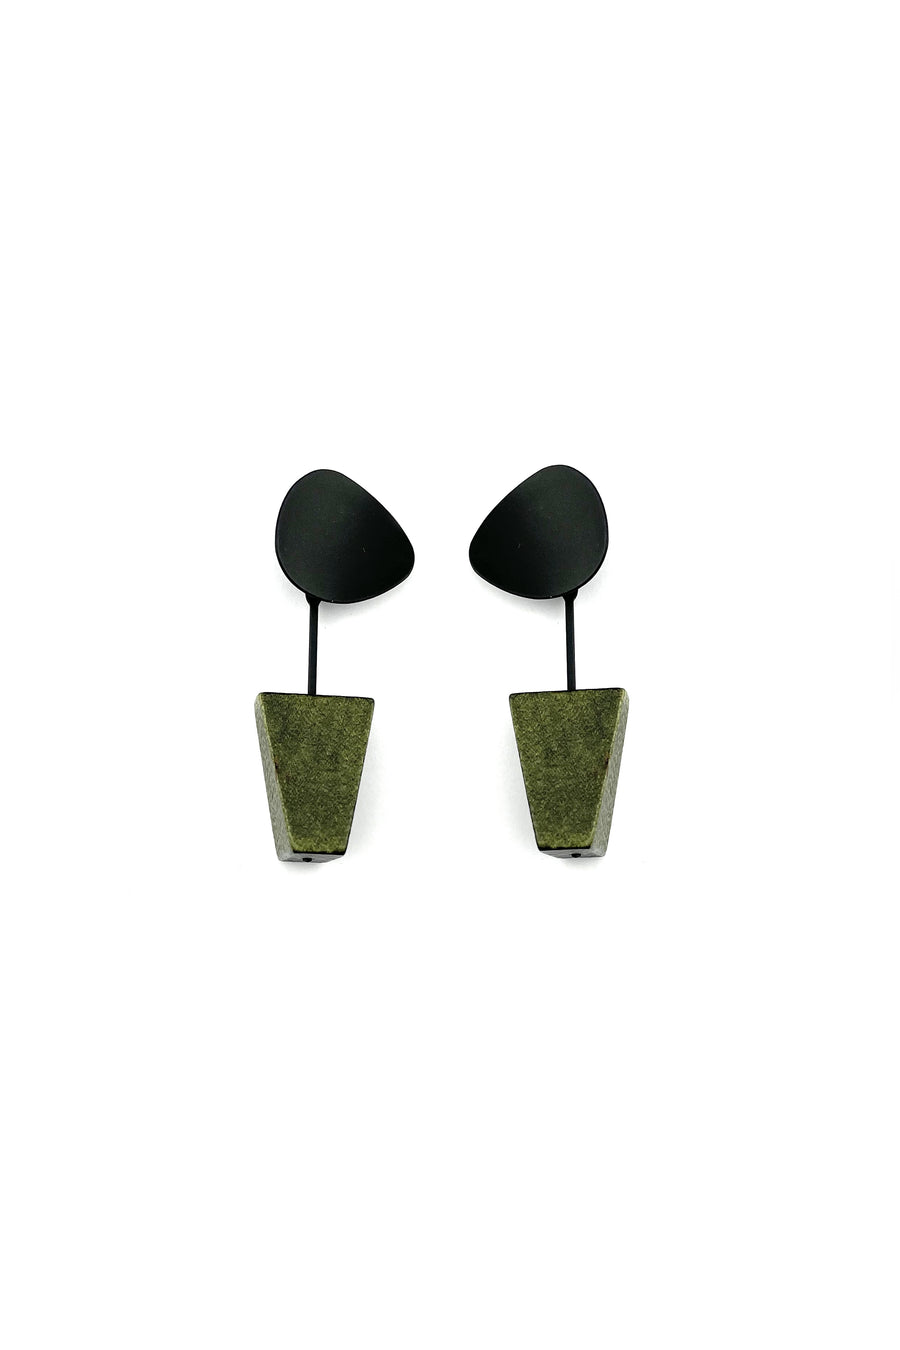 Matte Black and Green Wooden Minimalistic Earrings